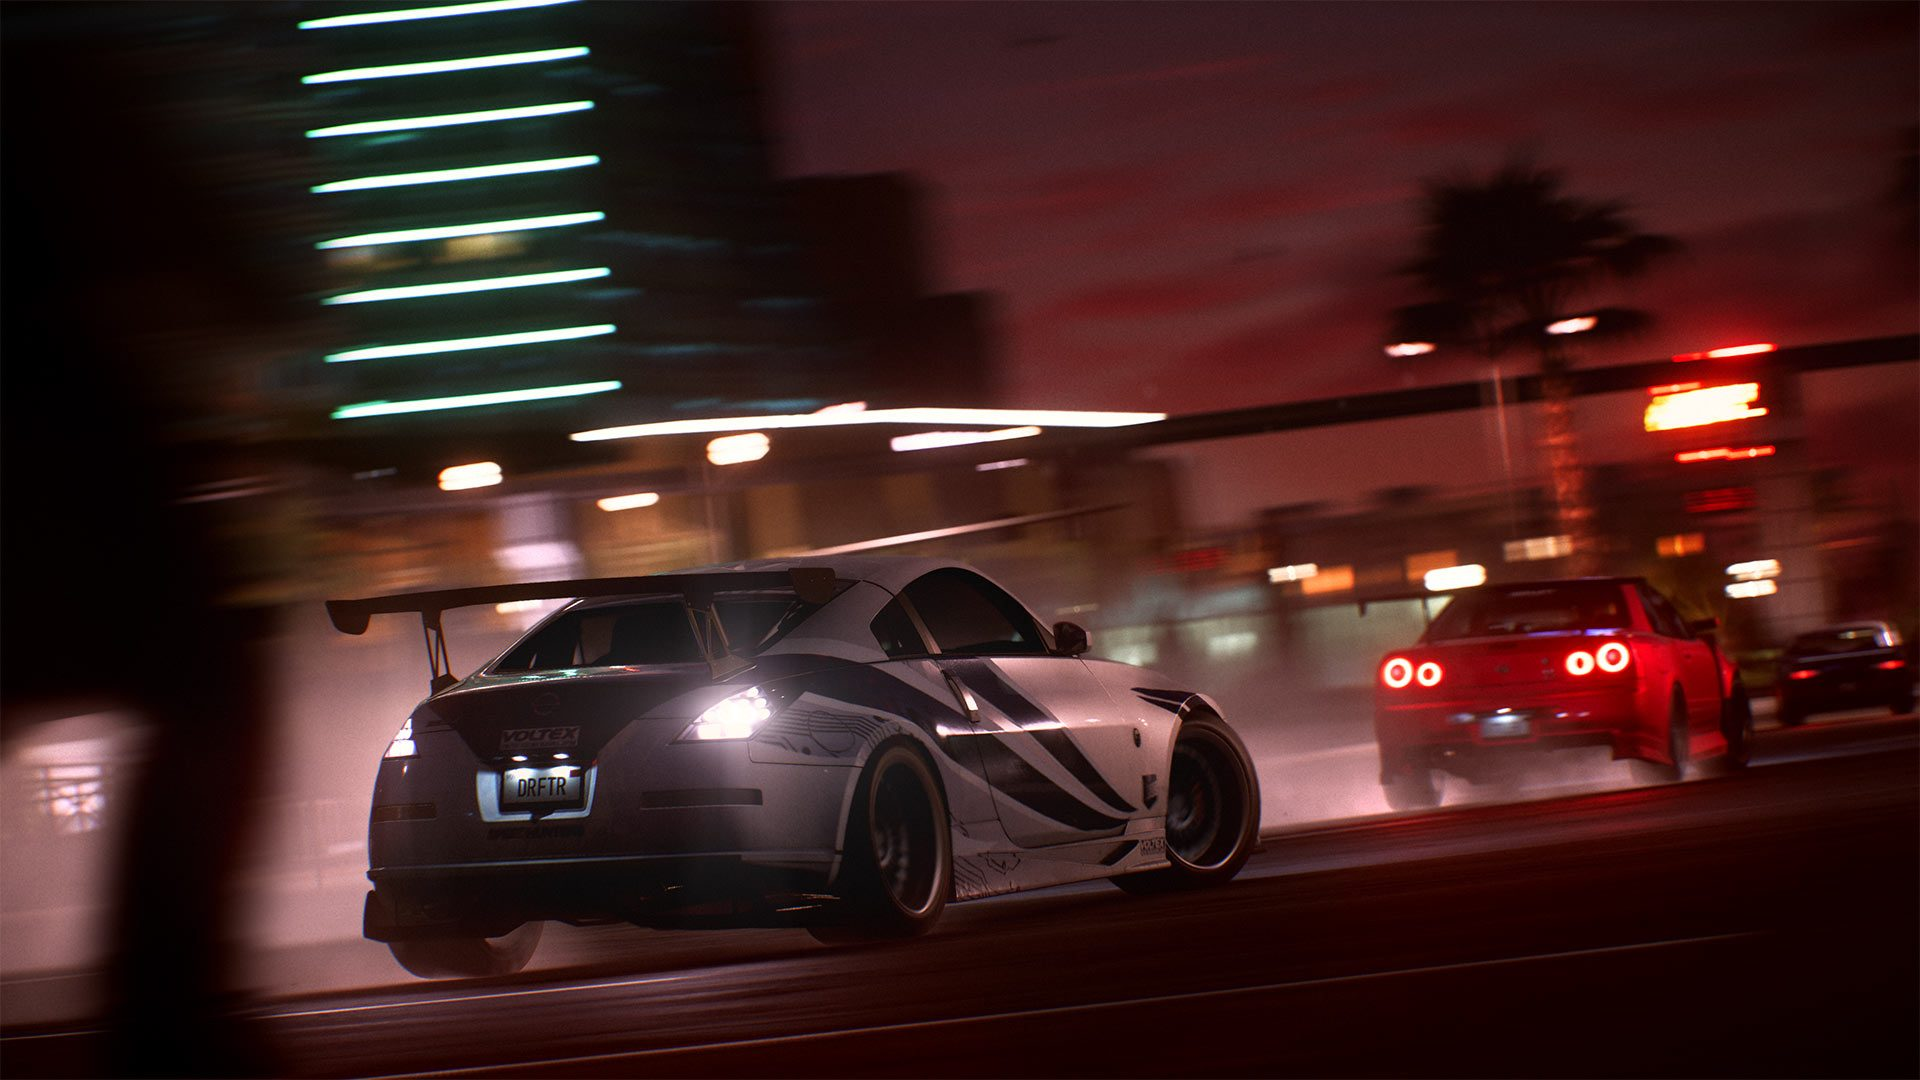 Need for Speed Payback   Car Racing Action Game   Official 1920x1080